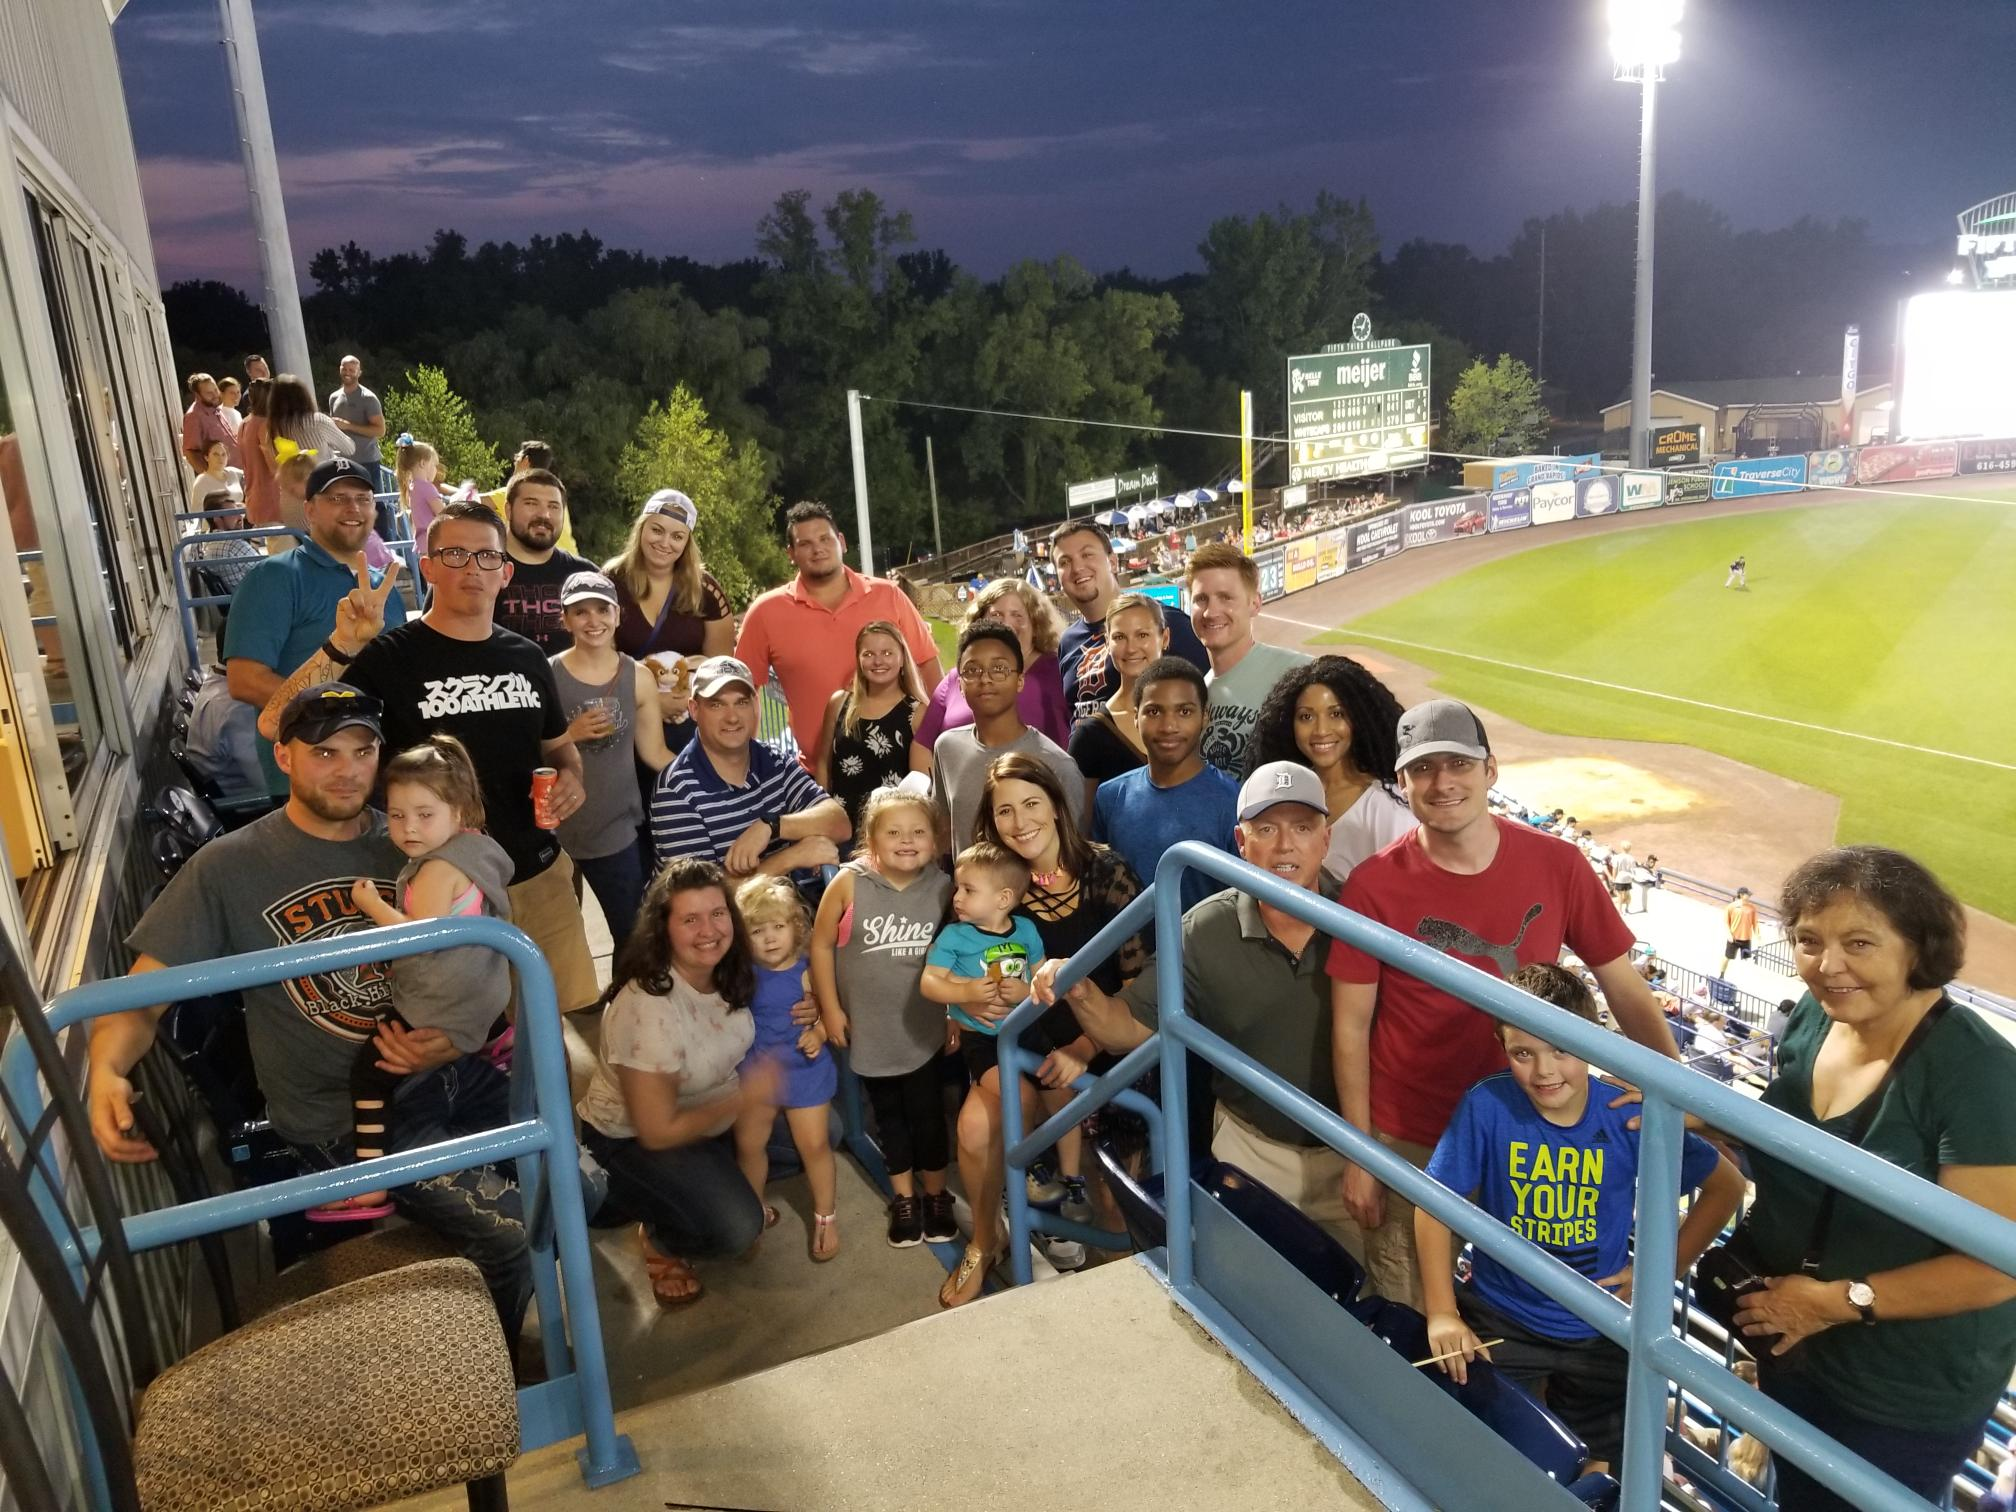 L Squared Gang at Fifth Third Ballpark